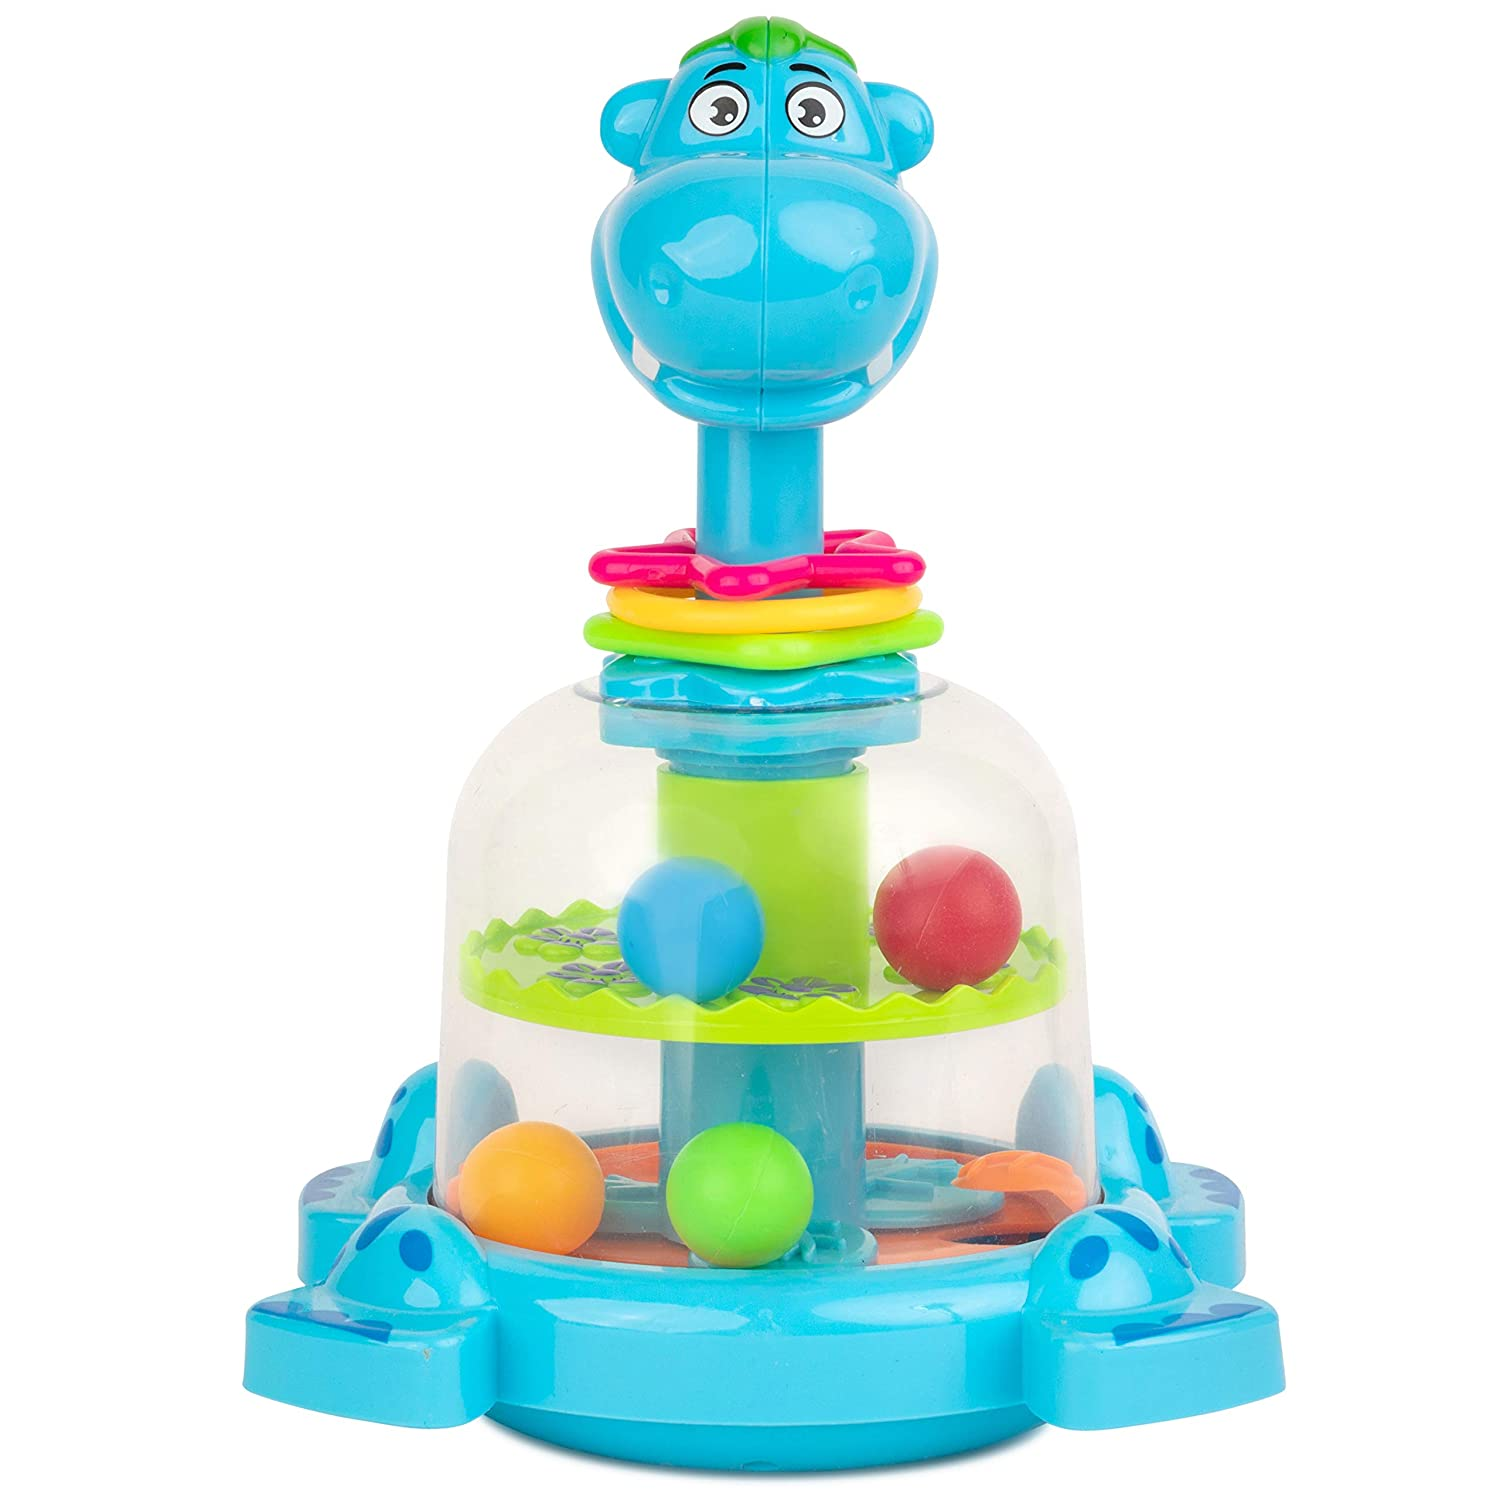 Easy Press Button Ideal for Fine Motor Skill Development and Learning Activity Great for Infants Toddlers 12 Months and Up Toy To Enjoy Push /& Spin Hippo Toy